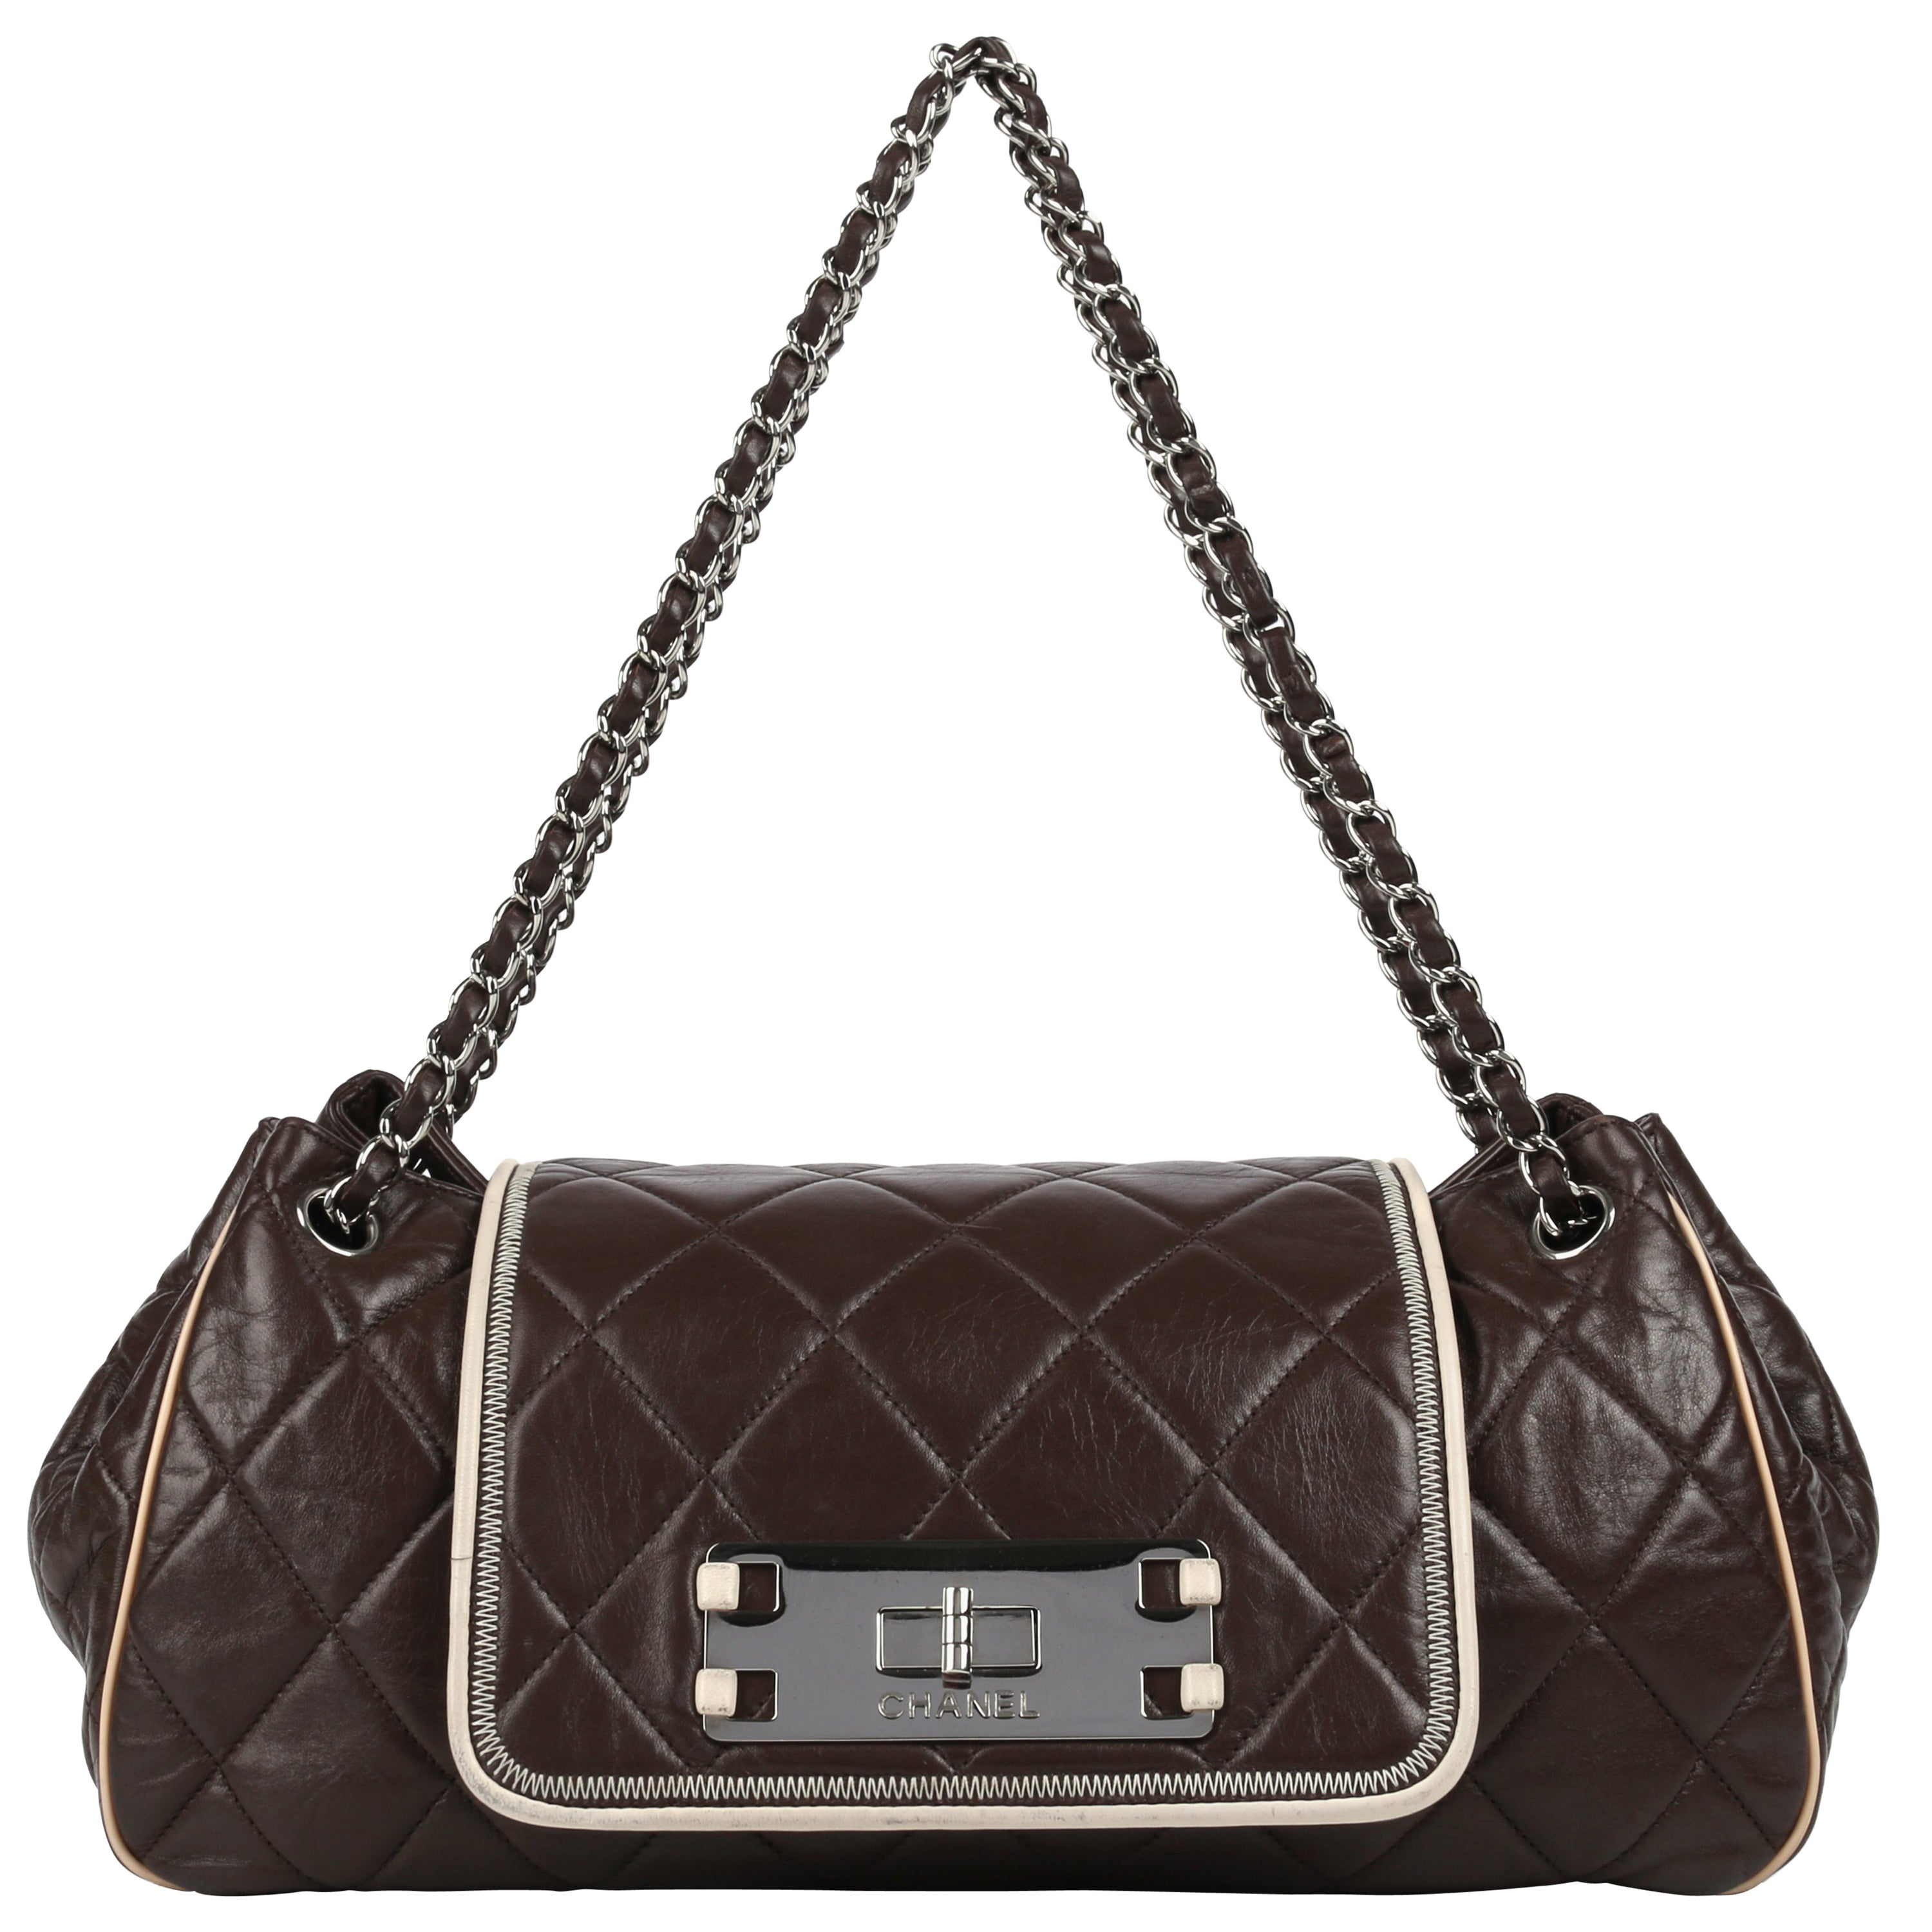 """CHANEL S/S 2008 """"East West"""" Brown Quilted Leather Accordion Flap Bag Purse"""